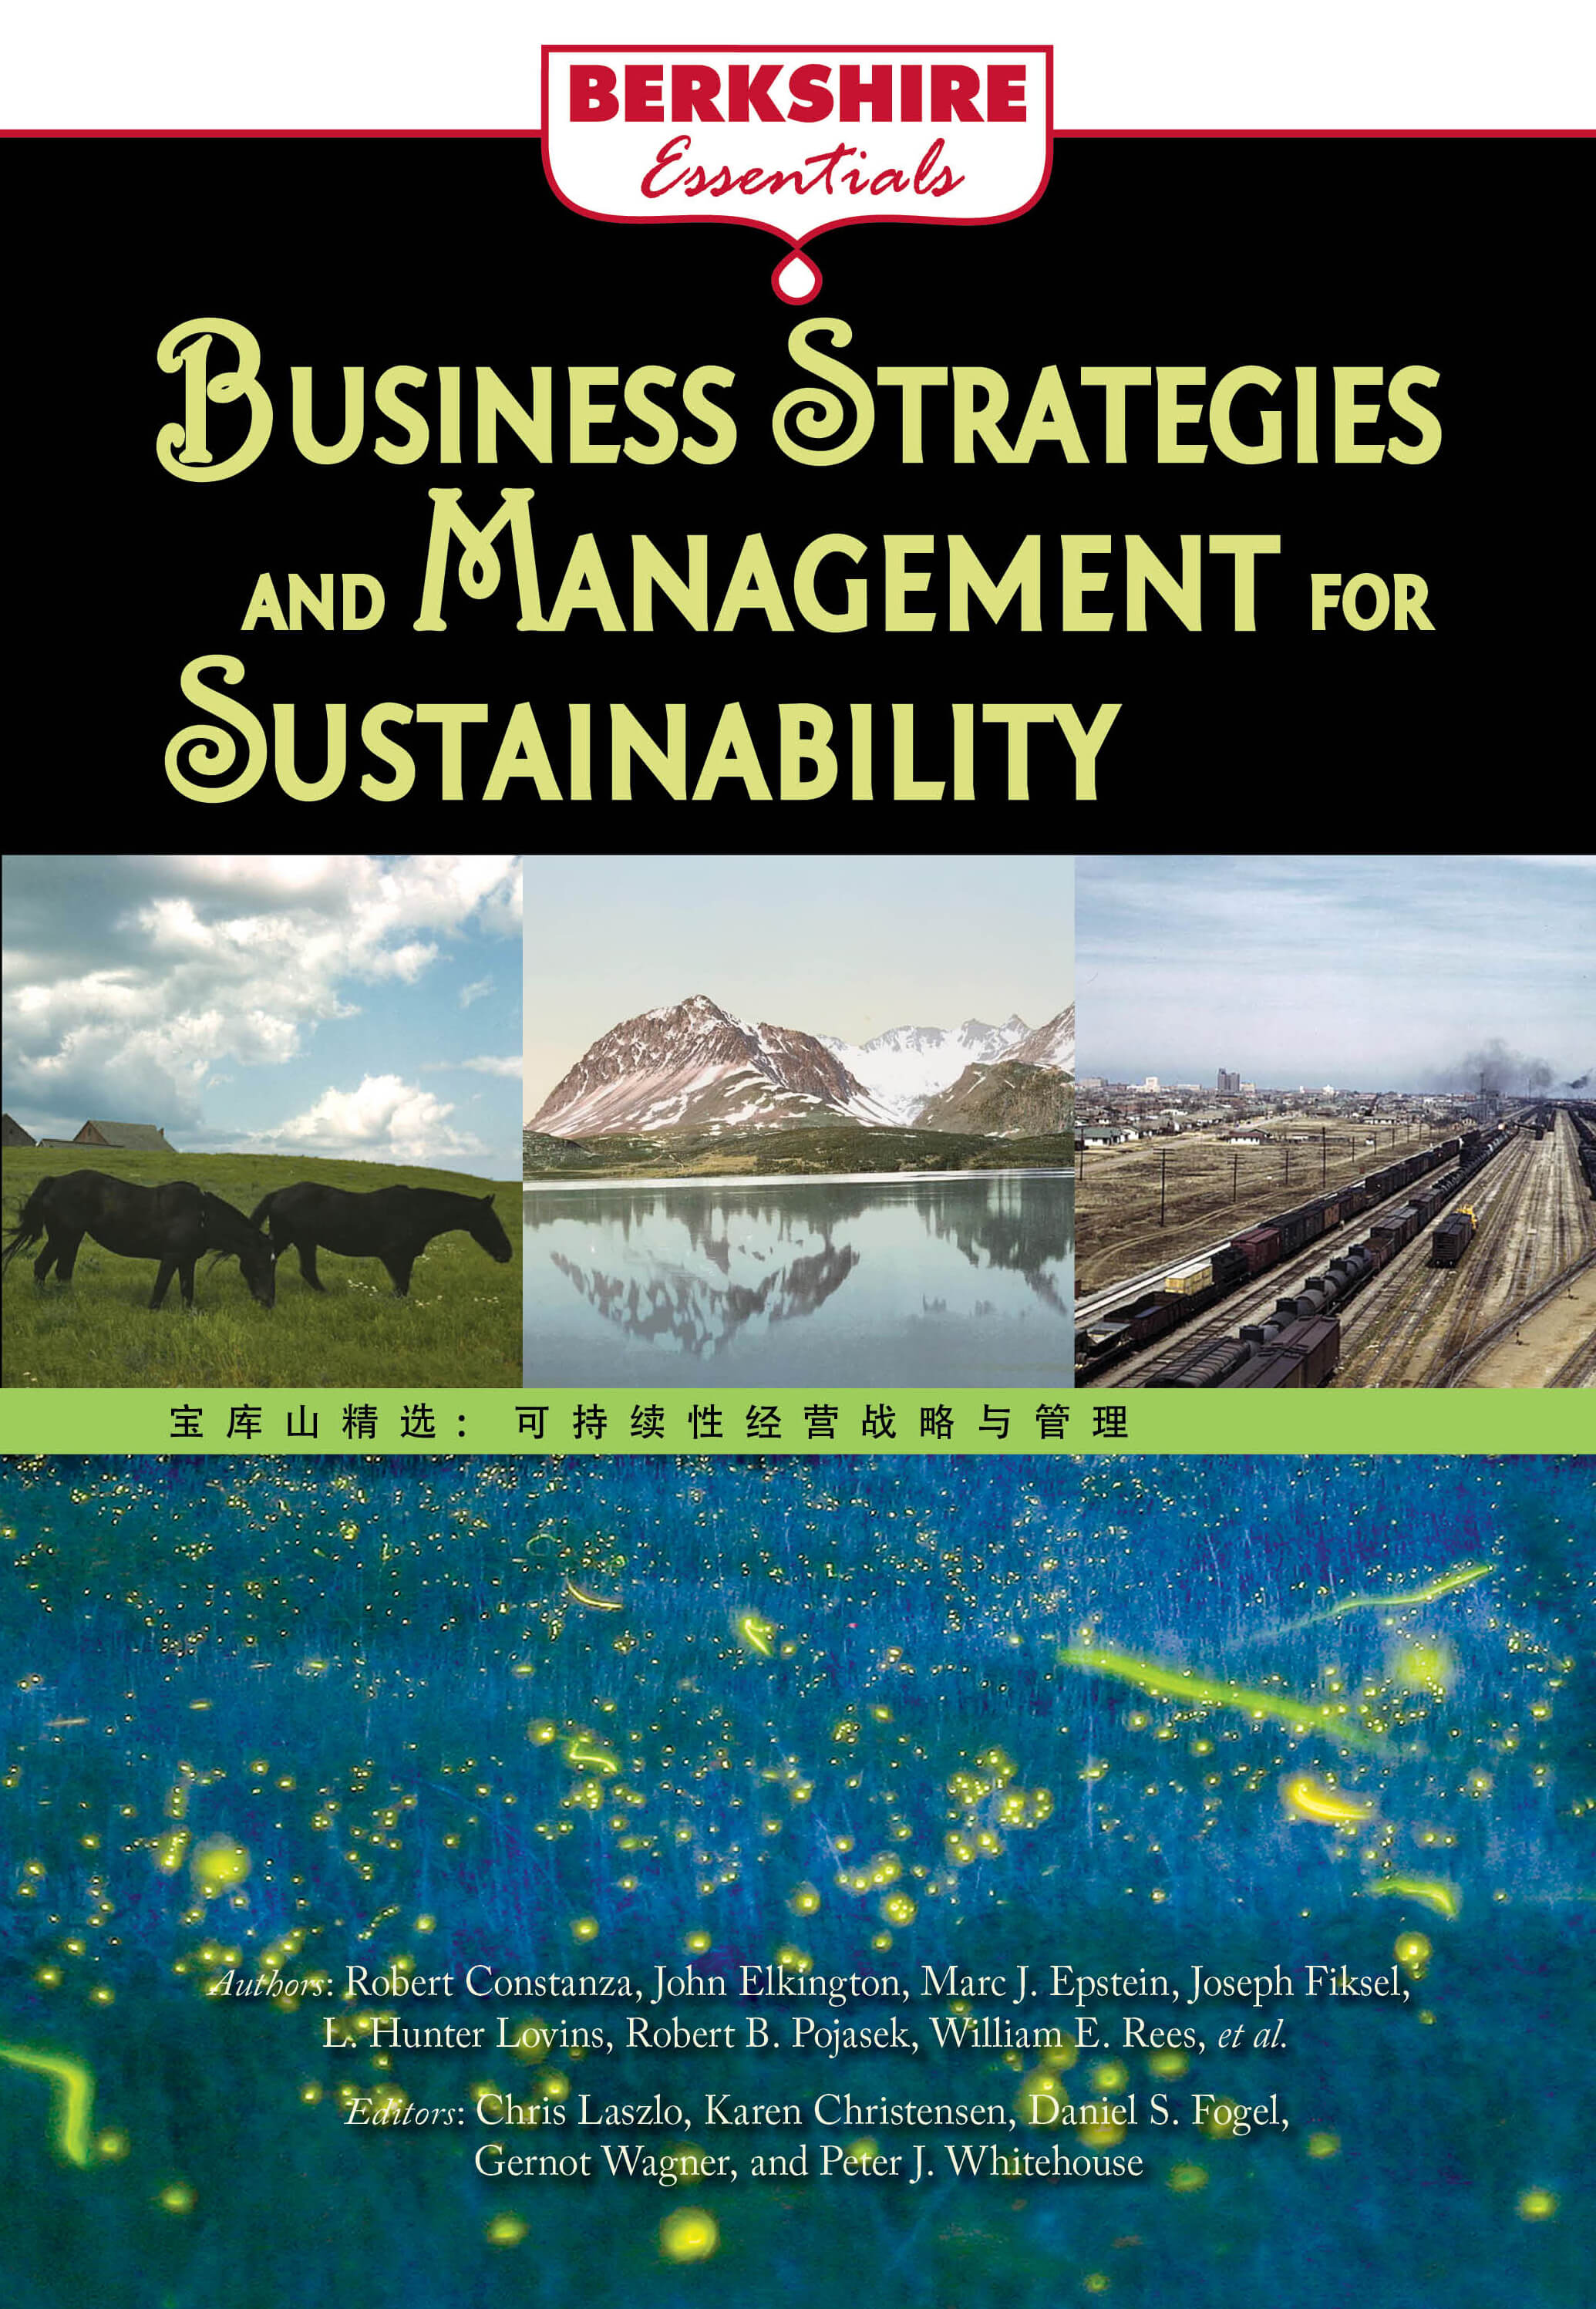 Business Strategies and Management for Sustainability: a Berkshire Essential